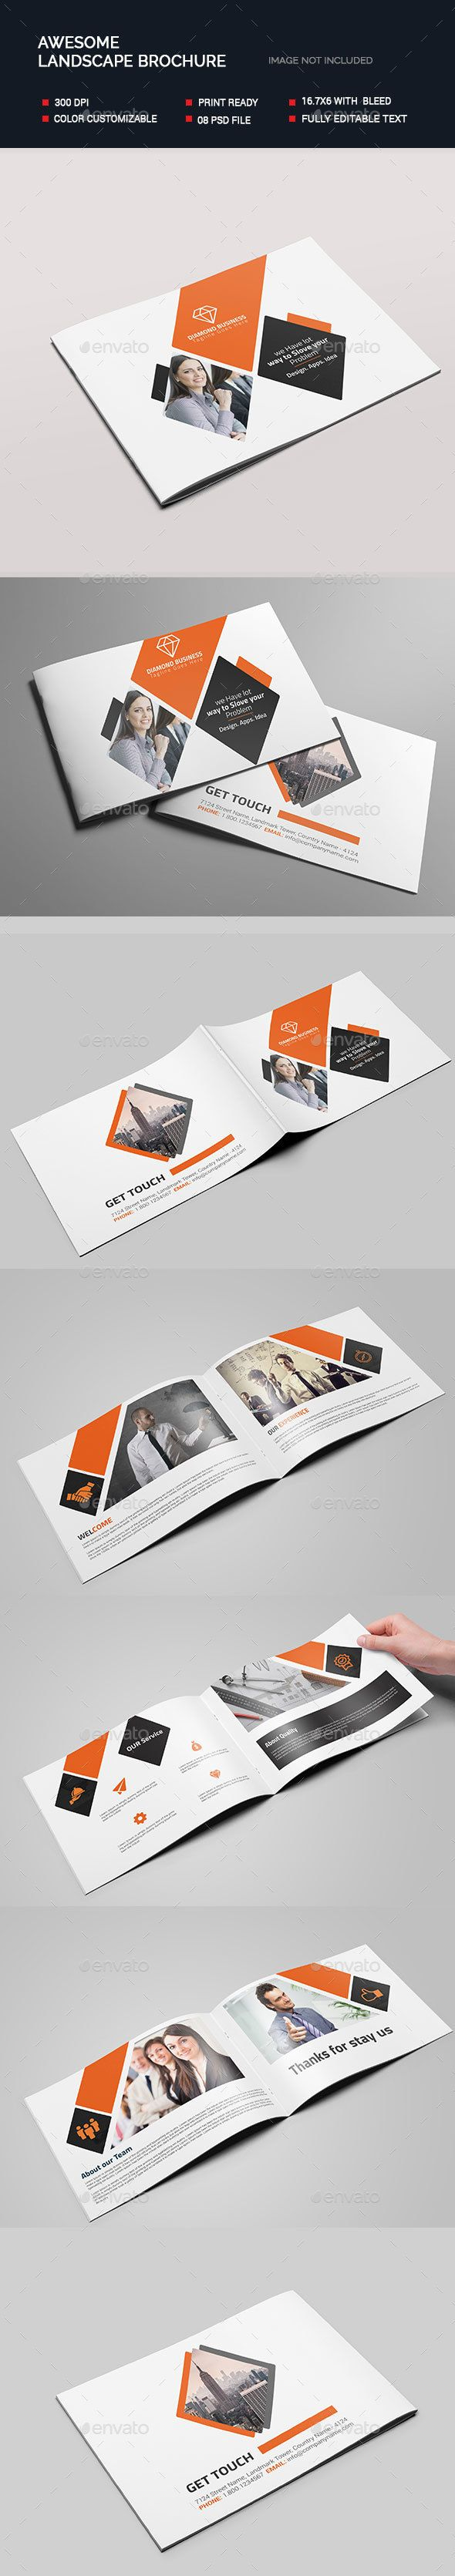 Landscape Brochure  Brochures Brochure Template And Landscaping